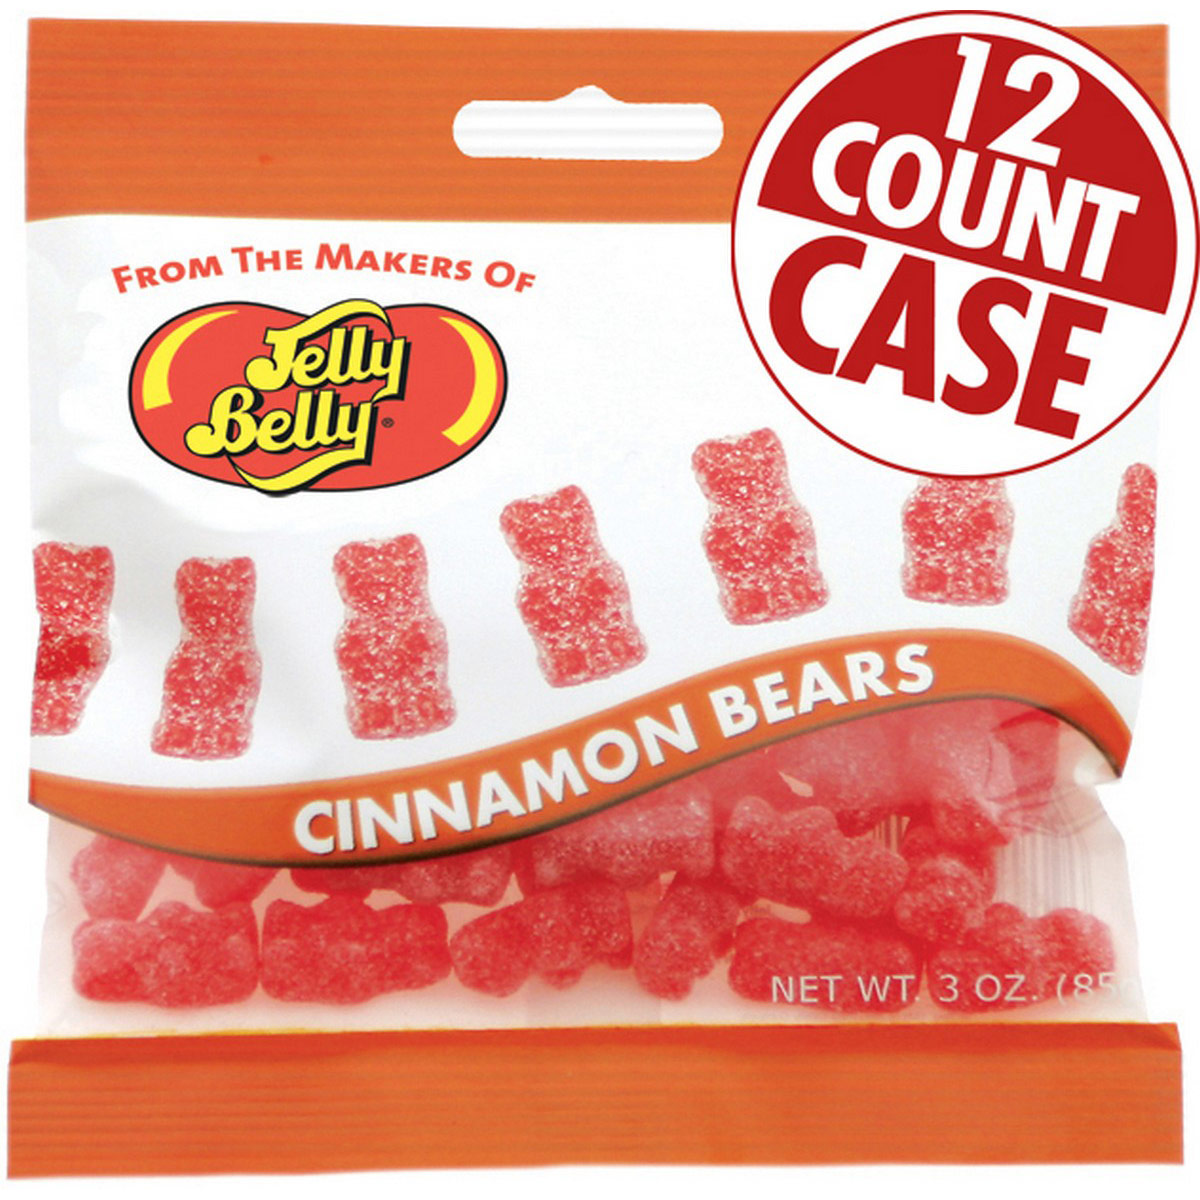 Unbearably HOT Cinnamon Bears - 3 oz Bag - 12 Count Case